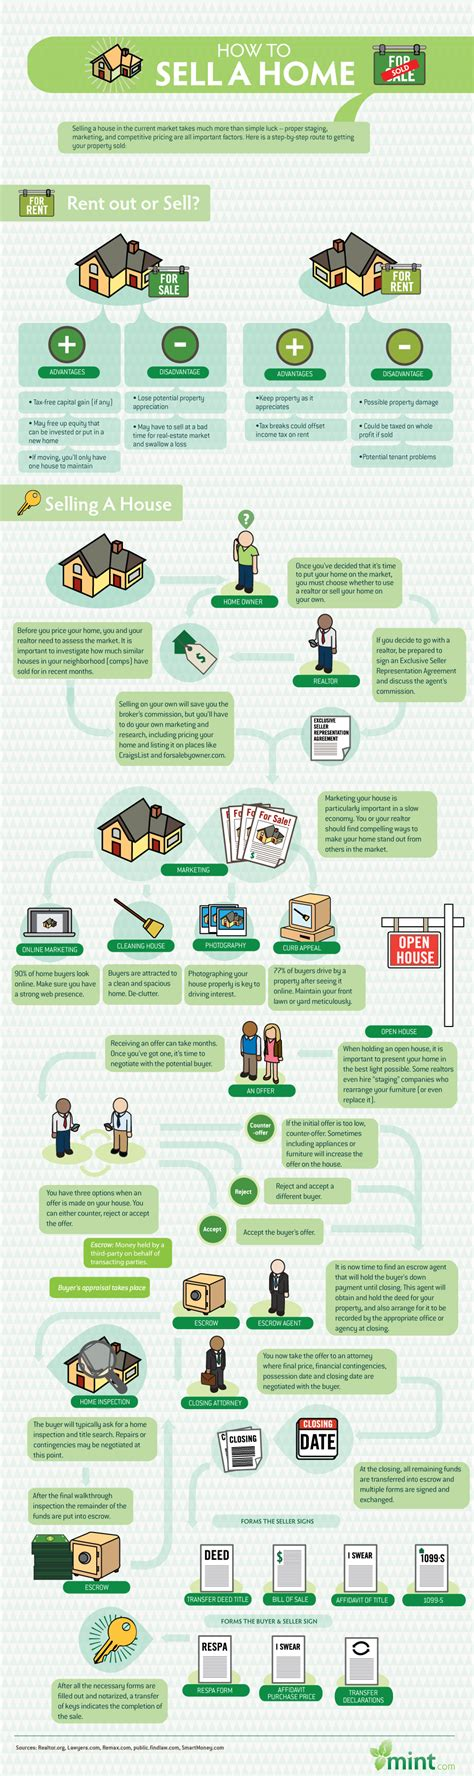 explaining the home buying process in simple terms